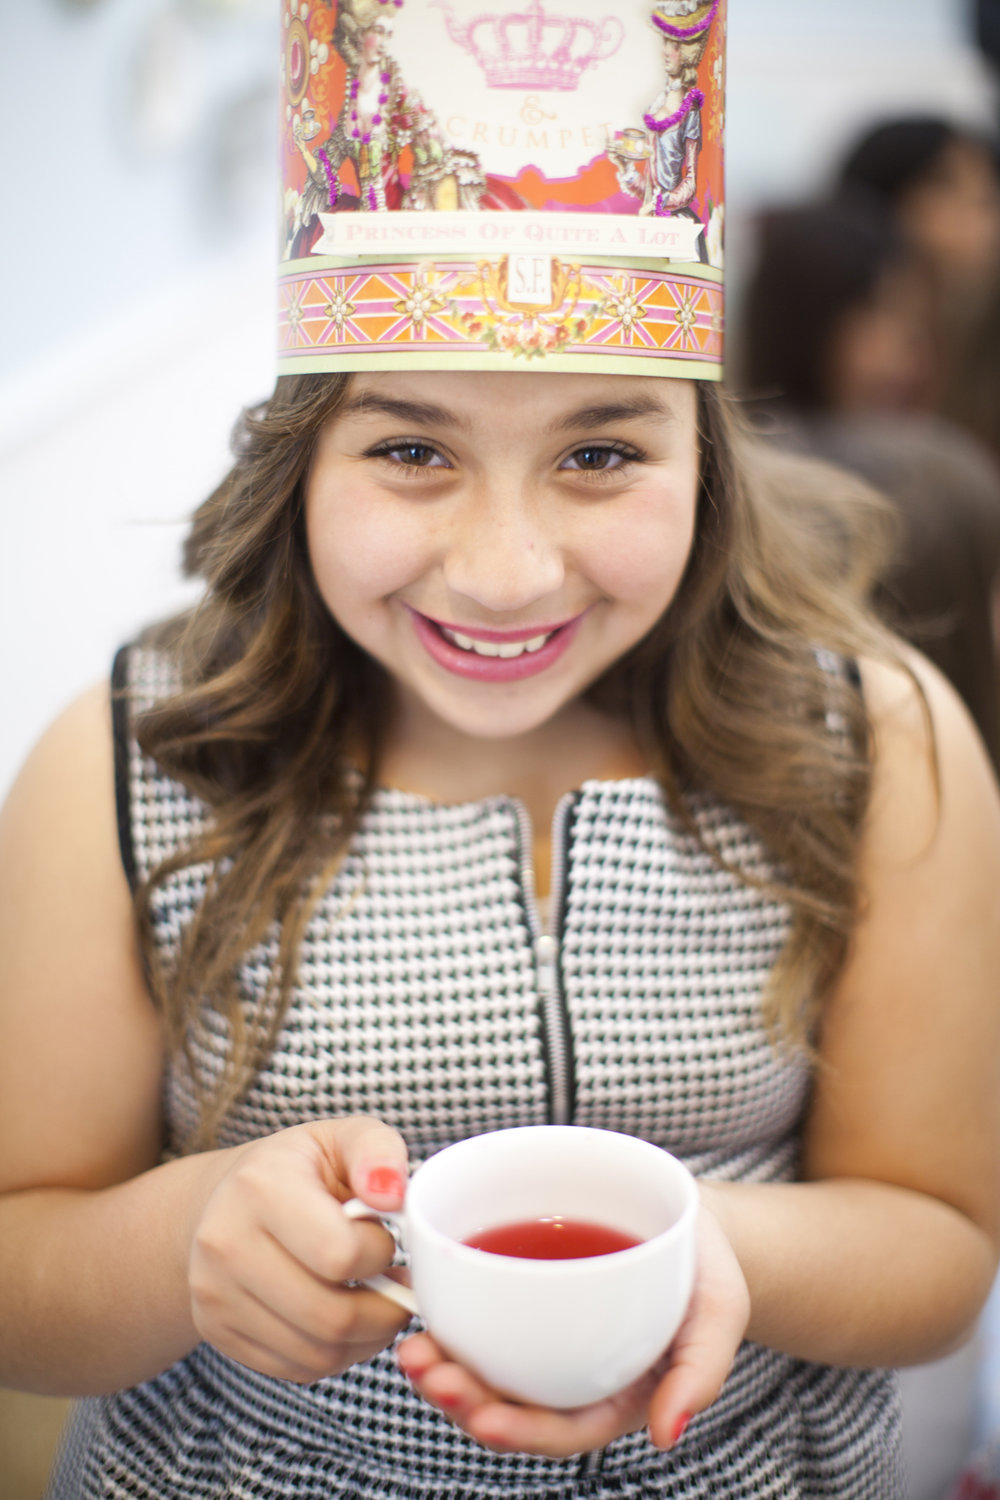 sophia_tea_party_crown_and_crumpet_san_francisco_photography_065.jpg